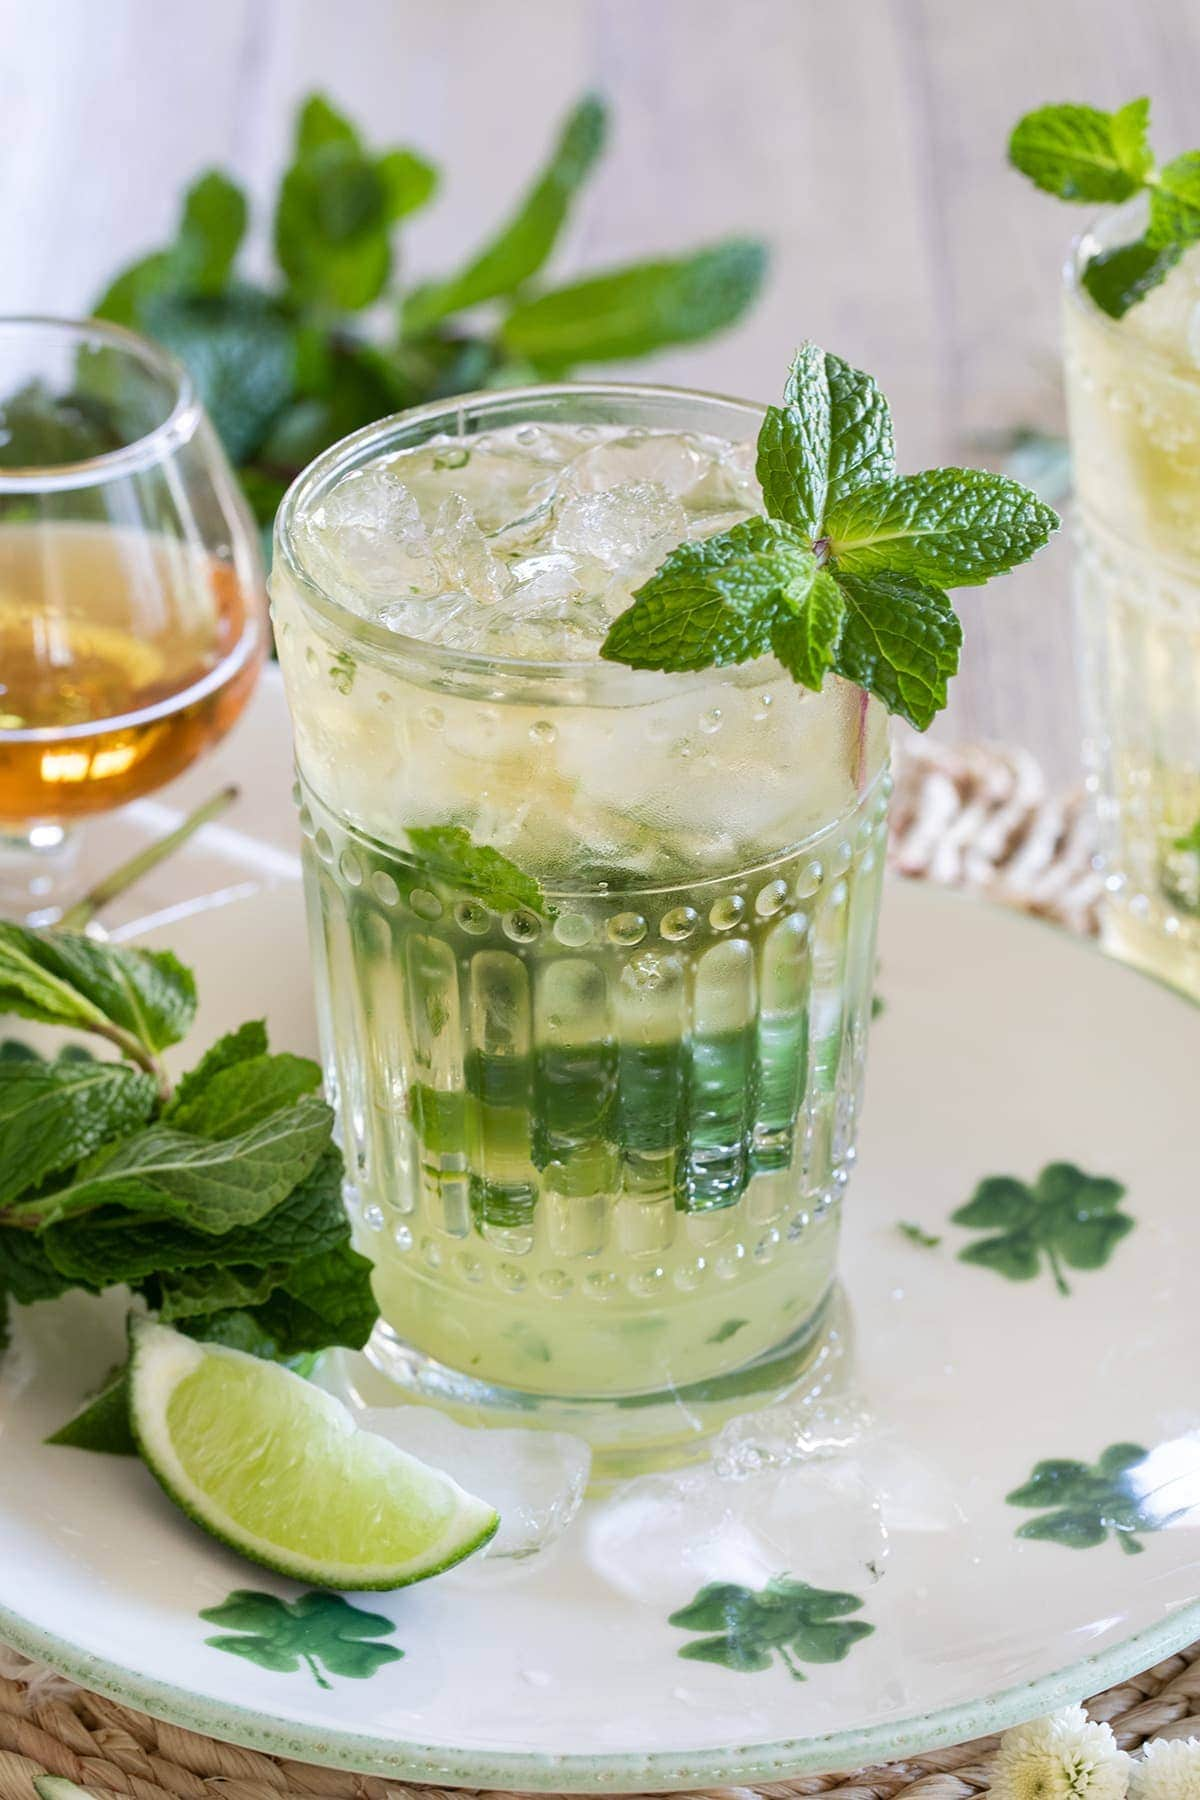 Irish Mint Mojitos are the perfect St. Patrick's Day cocktail made with Irish Whiskey, Mint Simple Syrup, muddled mint and limes and topped with club soda.